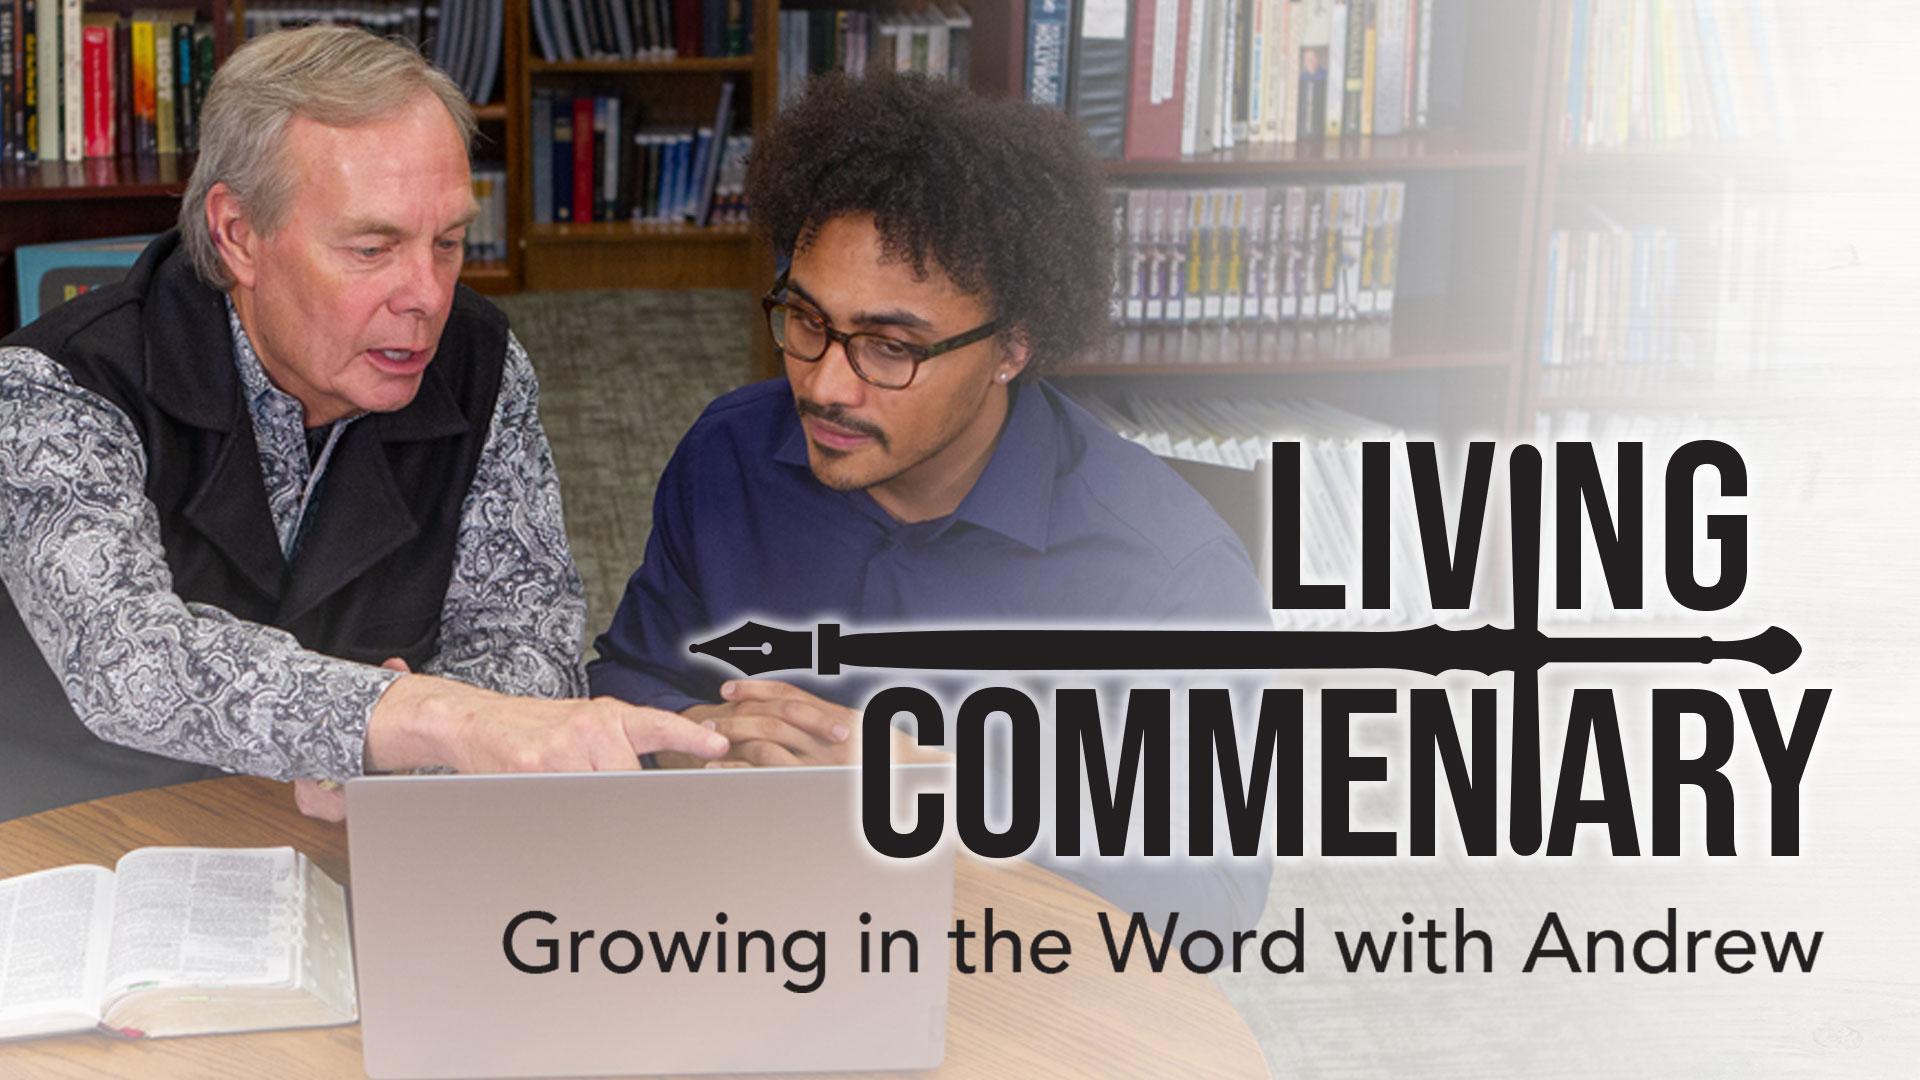 Living Commentary - Growing in the Word with Andrew